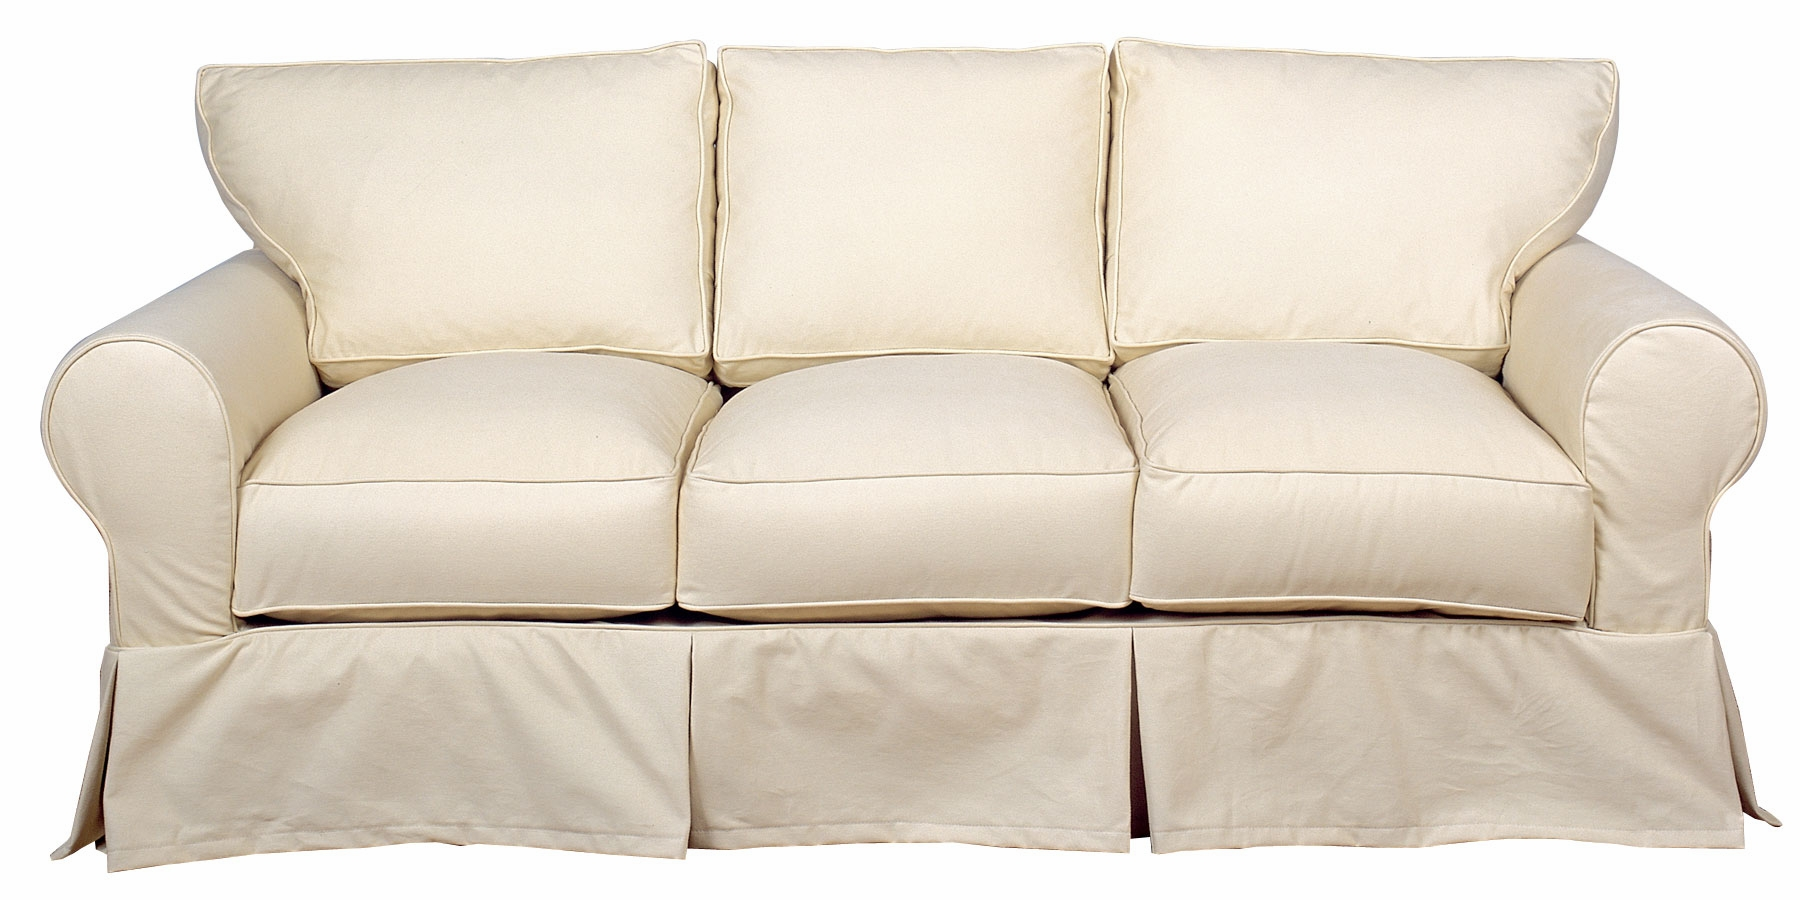 Dilworth Slipcover 3 Cushion Queen Sleeper Sofa